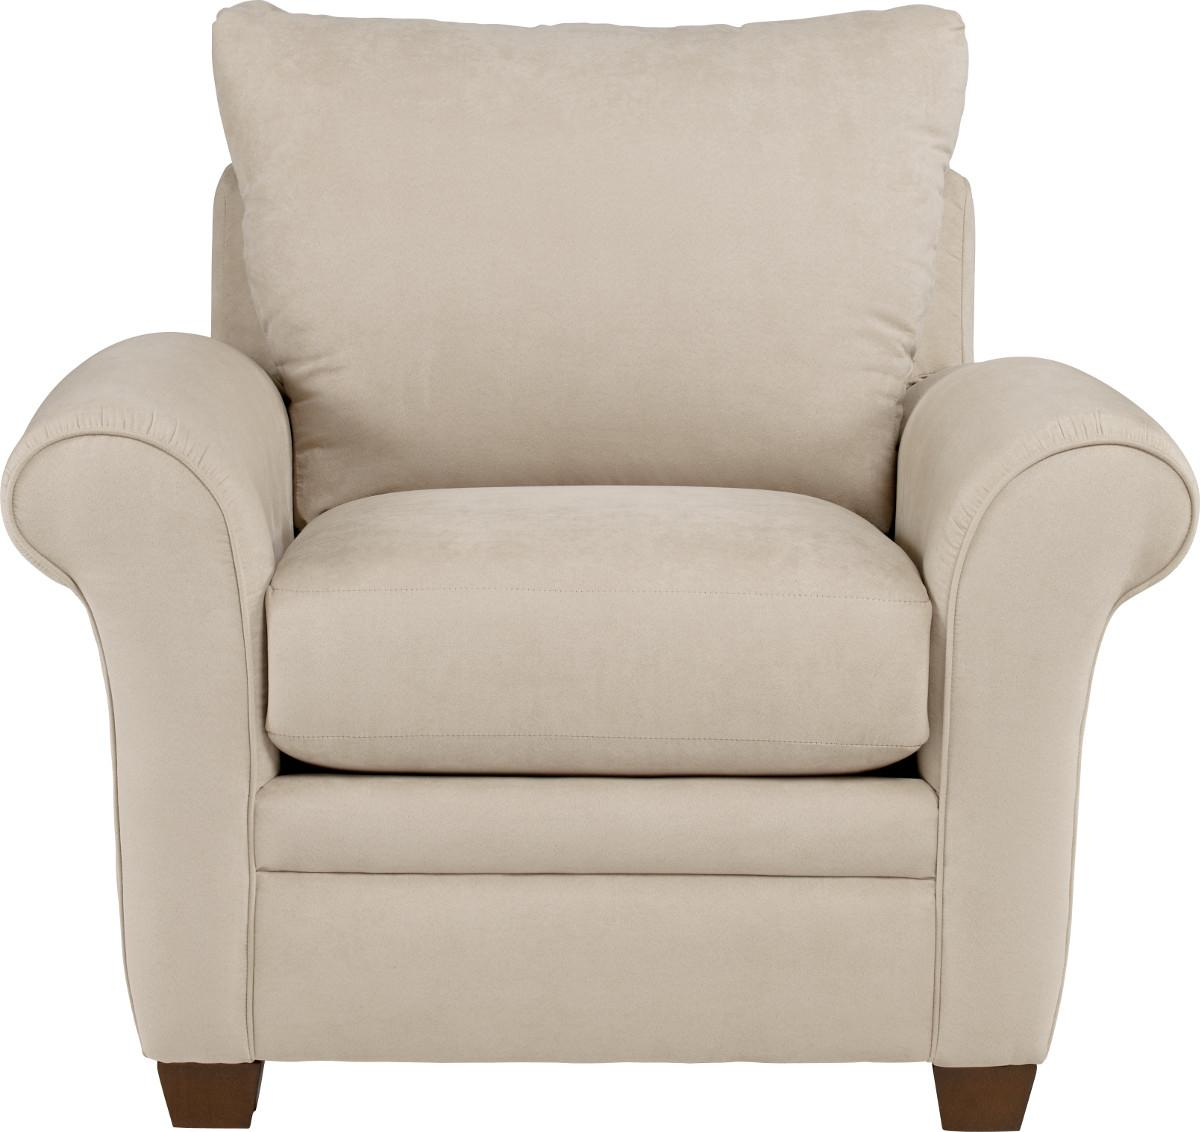 Transitional Upholstered Chair with Sock Arms